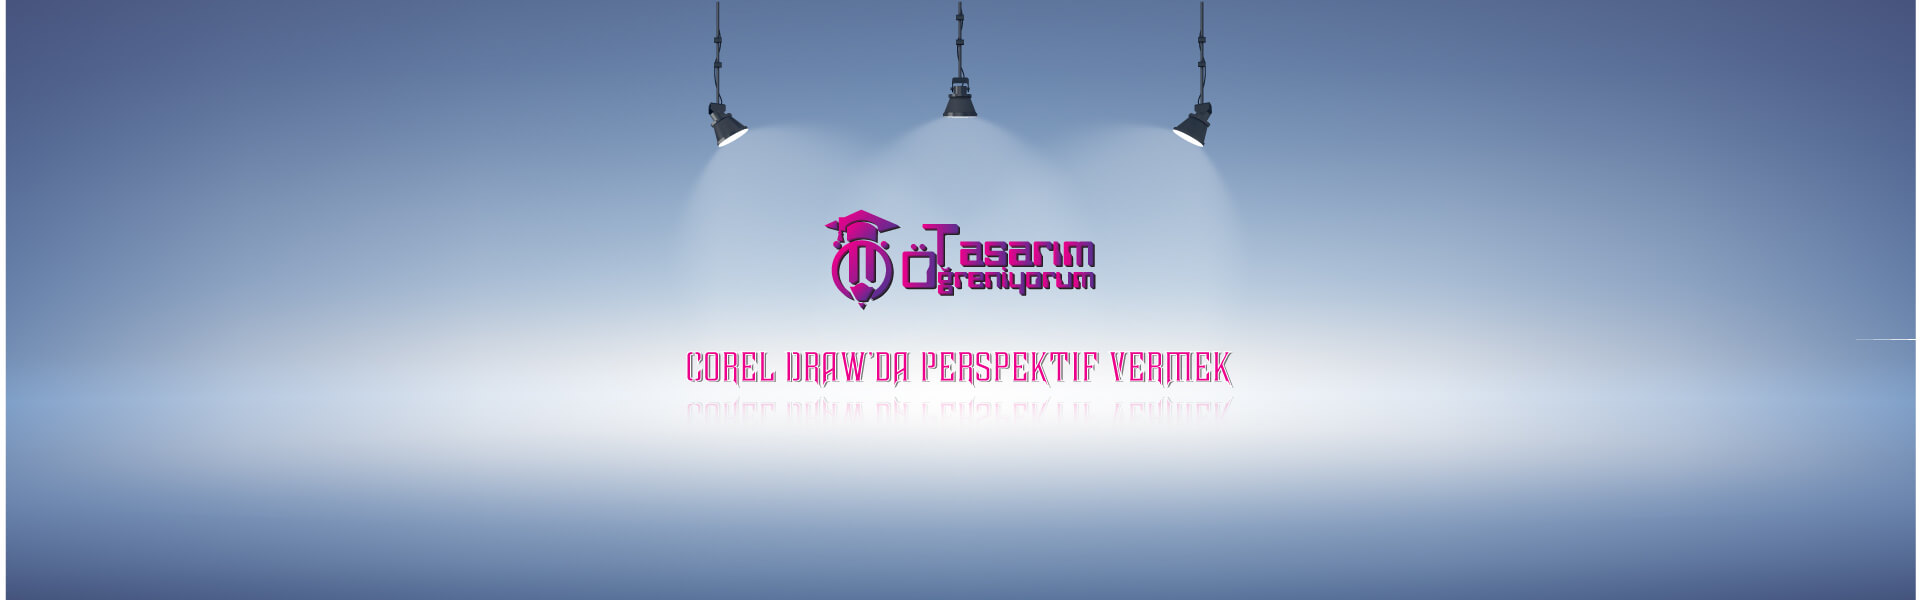 Photo of Corel Draw'da Perspektif Vermek